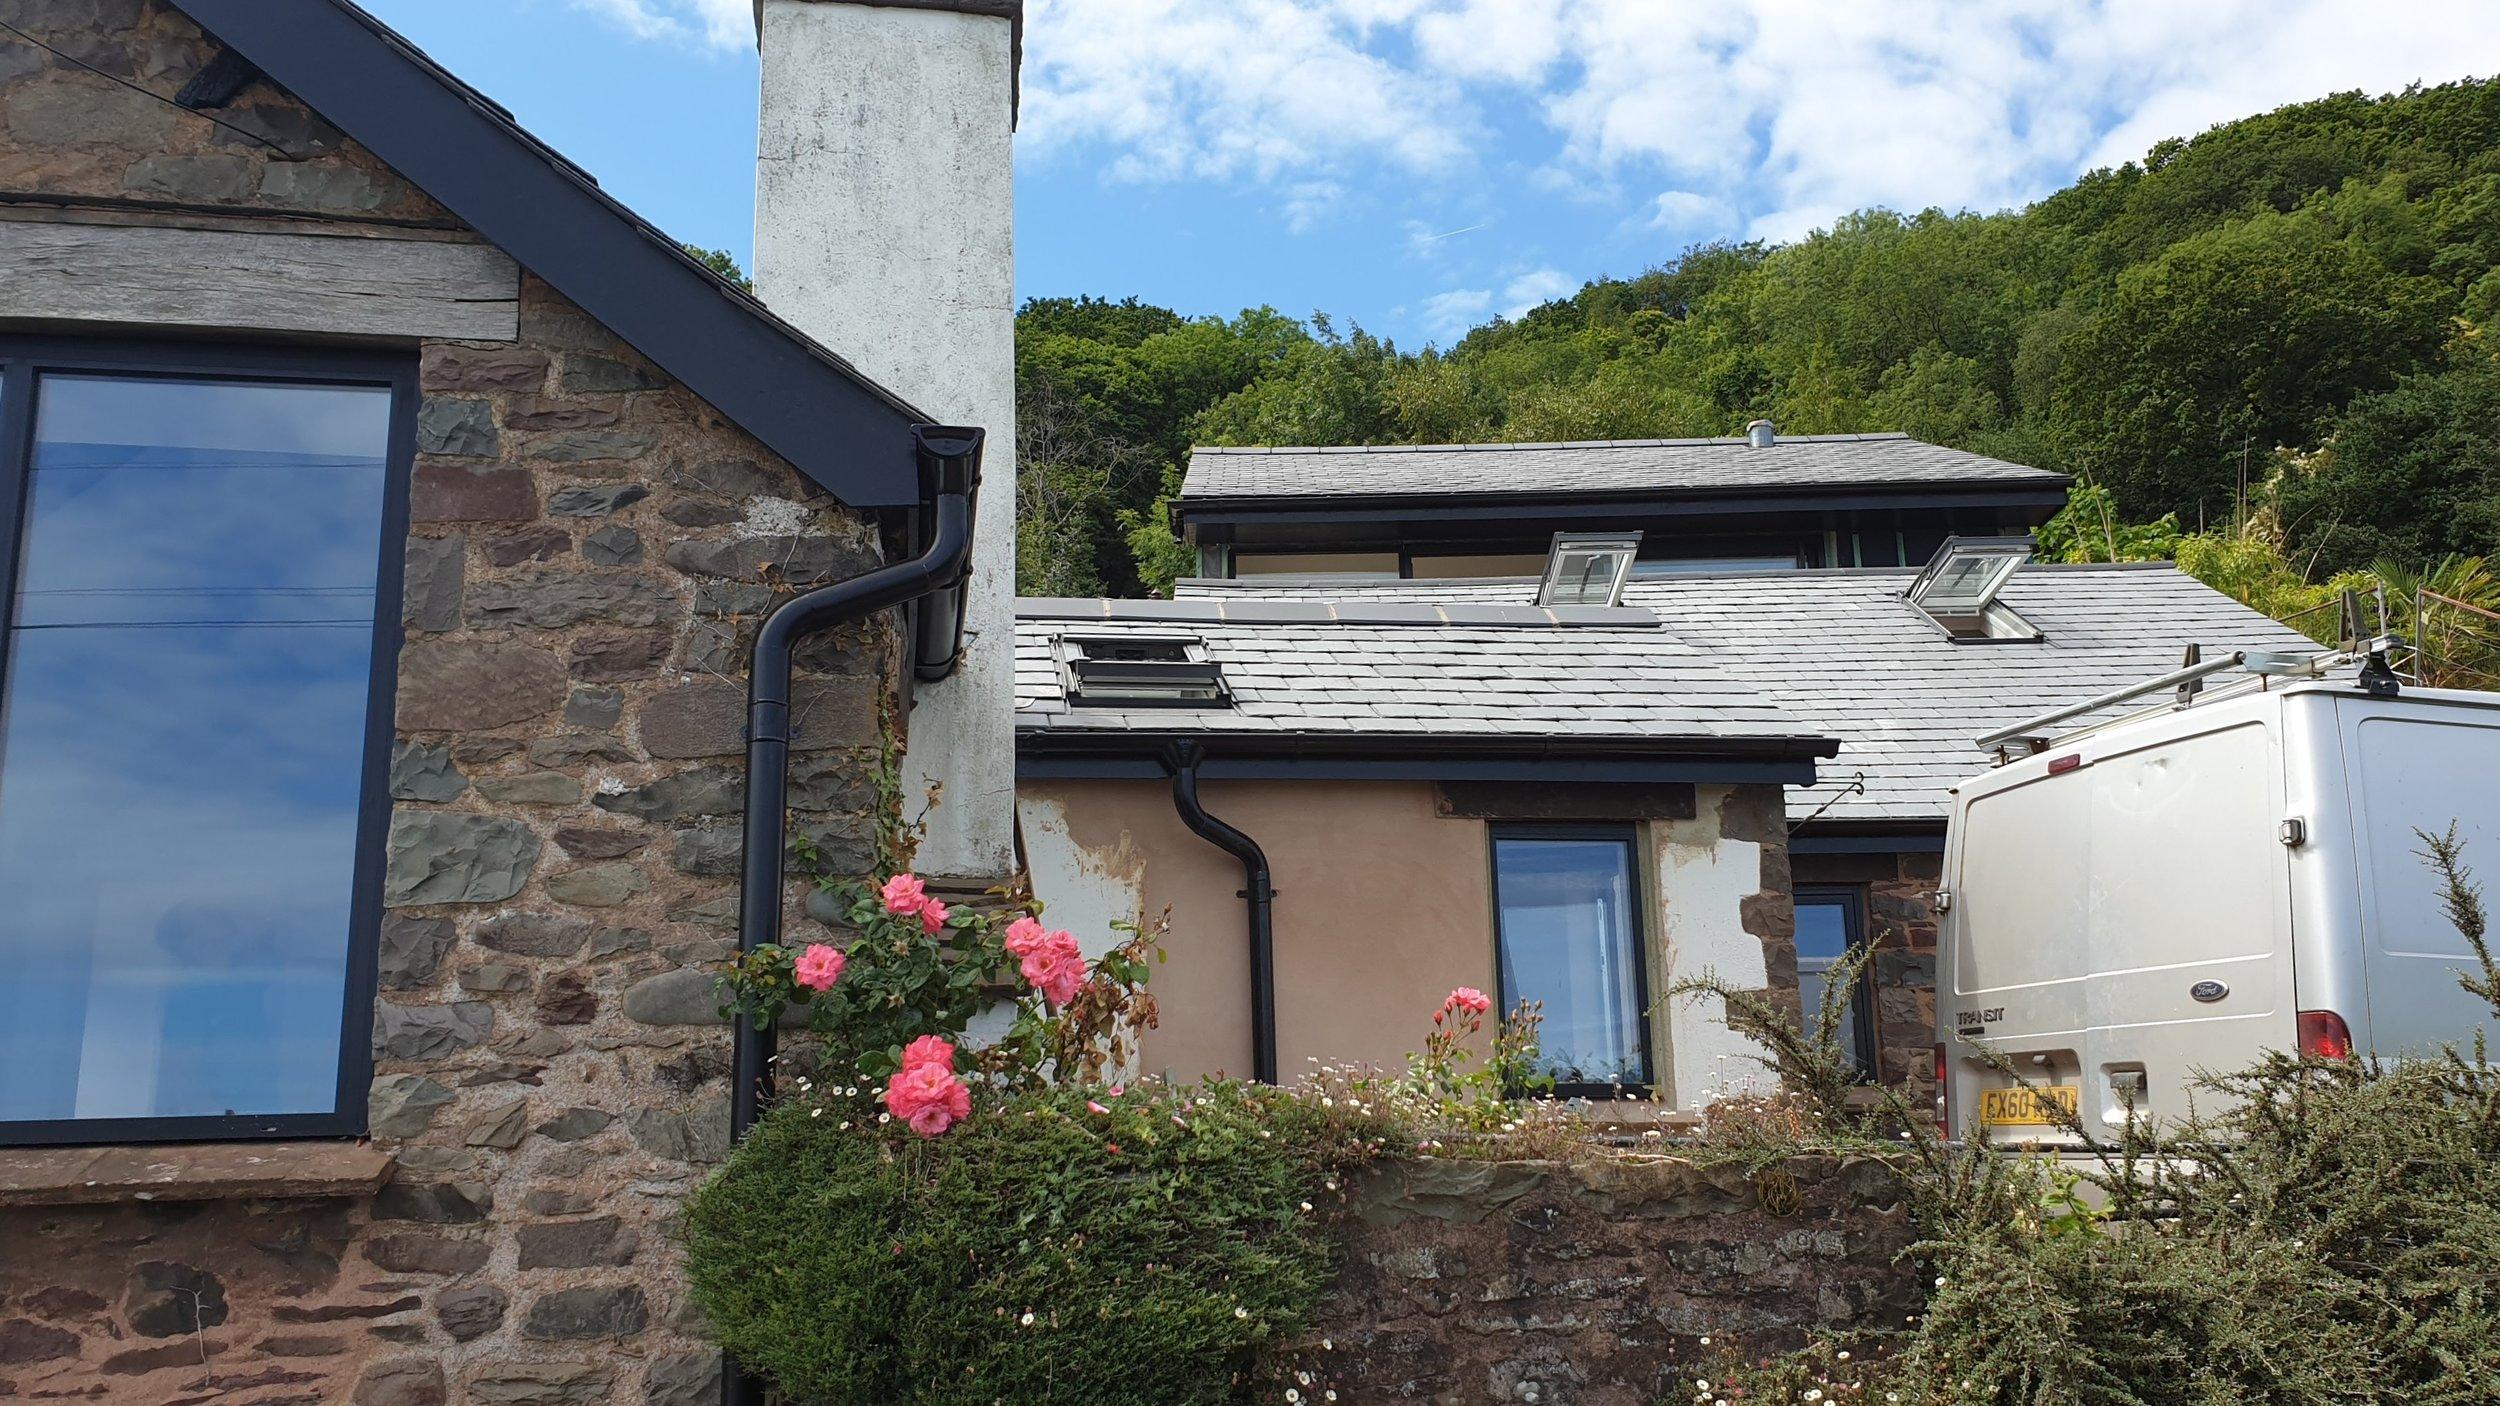 forge-planning-approval-exmoor-nick-thorne